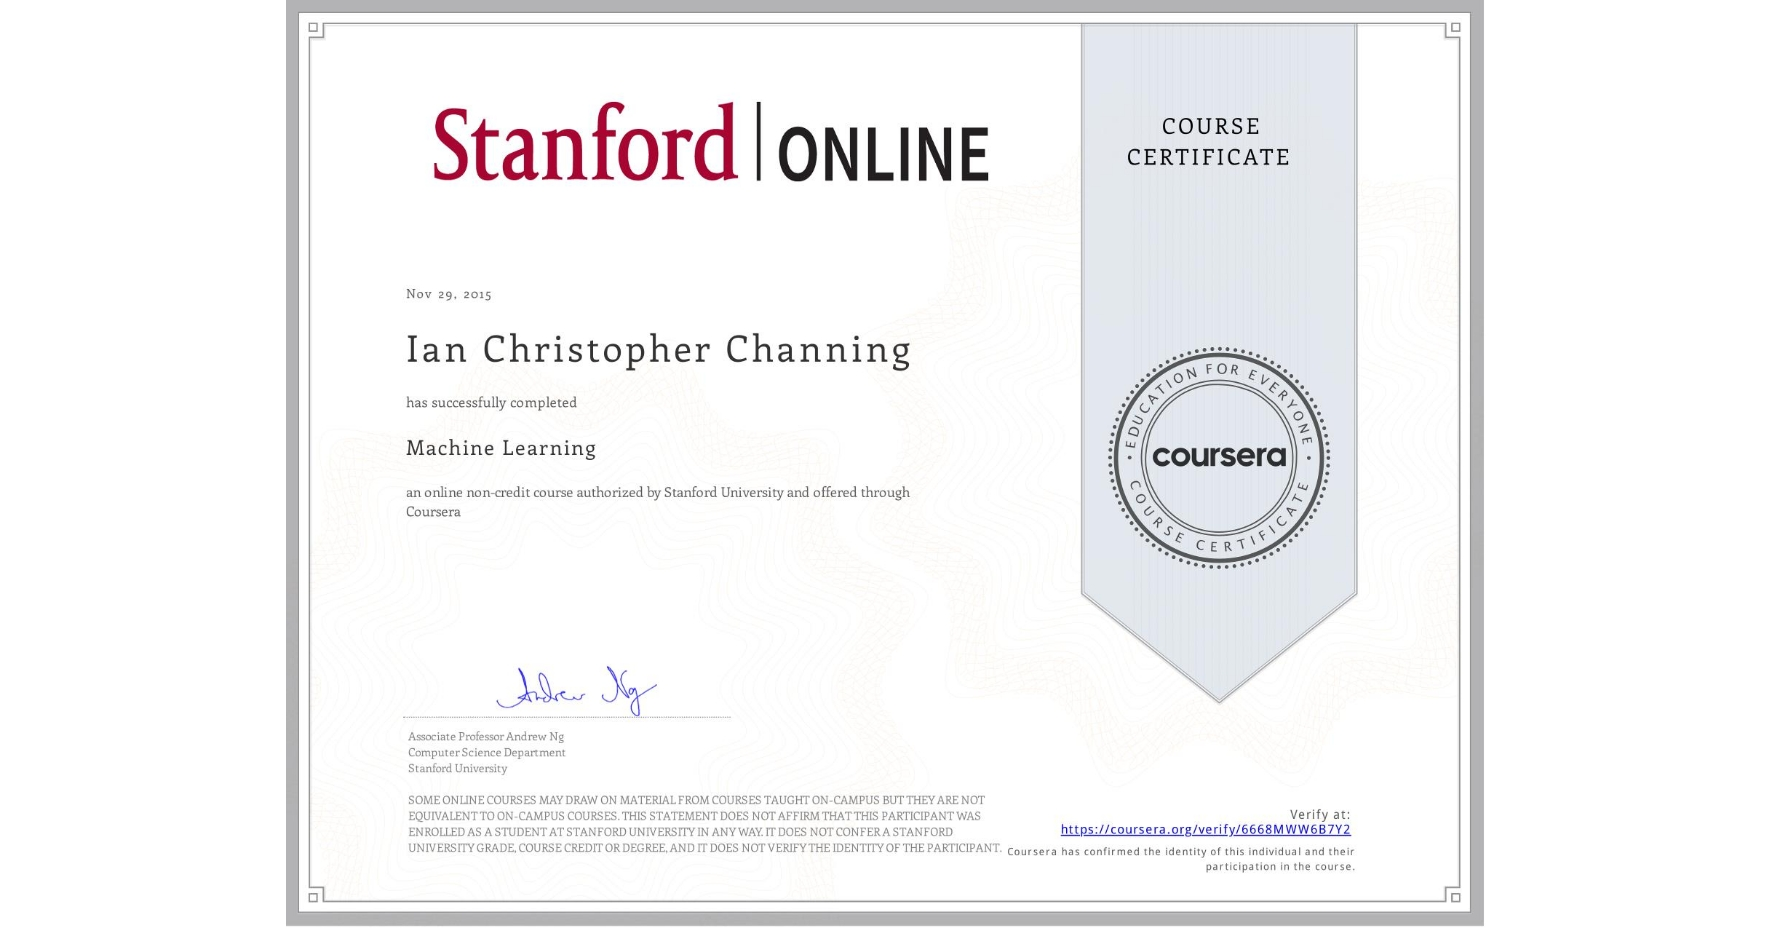 View certificate for Ian Christopher Channing, Machine Learning, an online non-credit course authorized by Stanford University and offered through Coursera